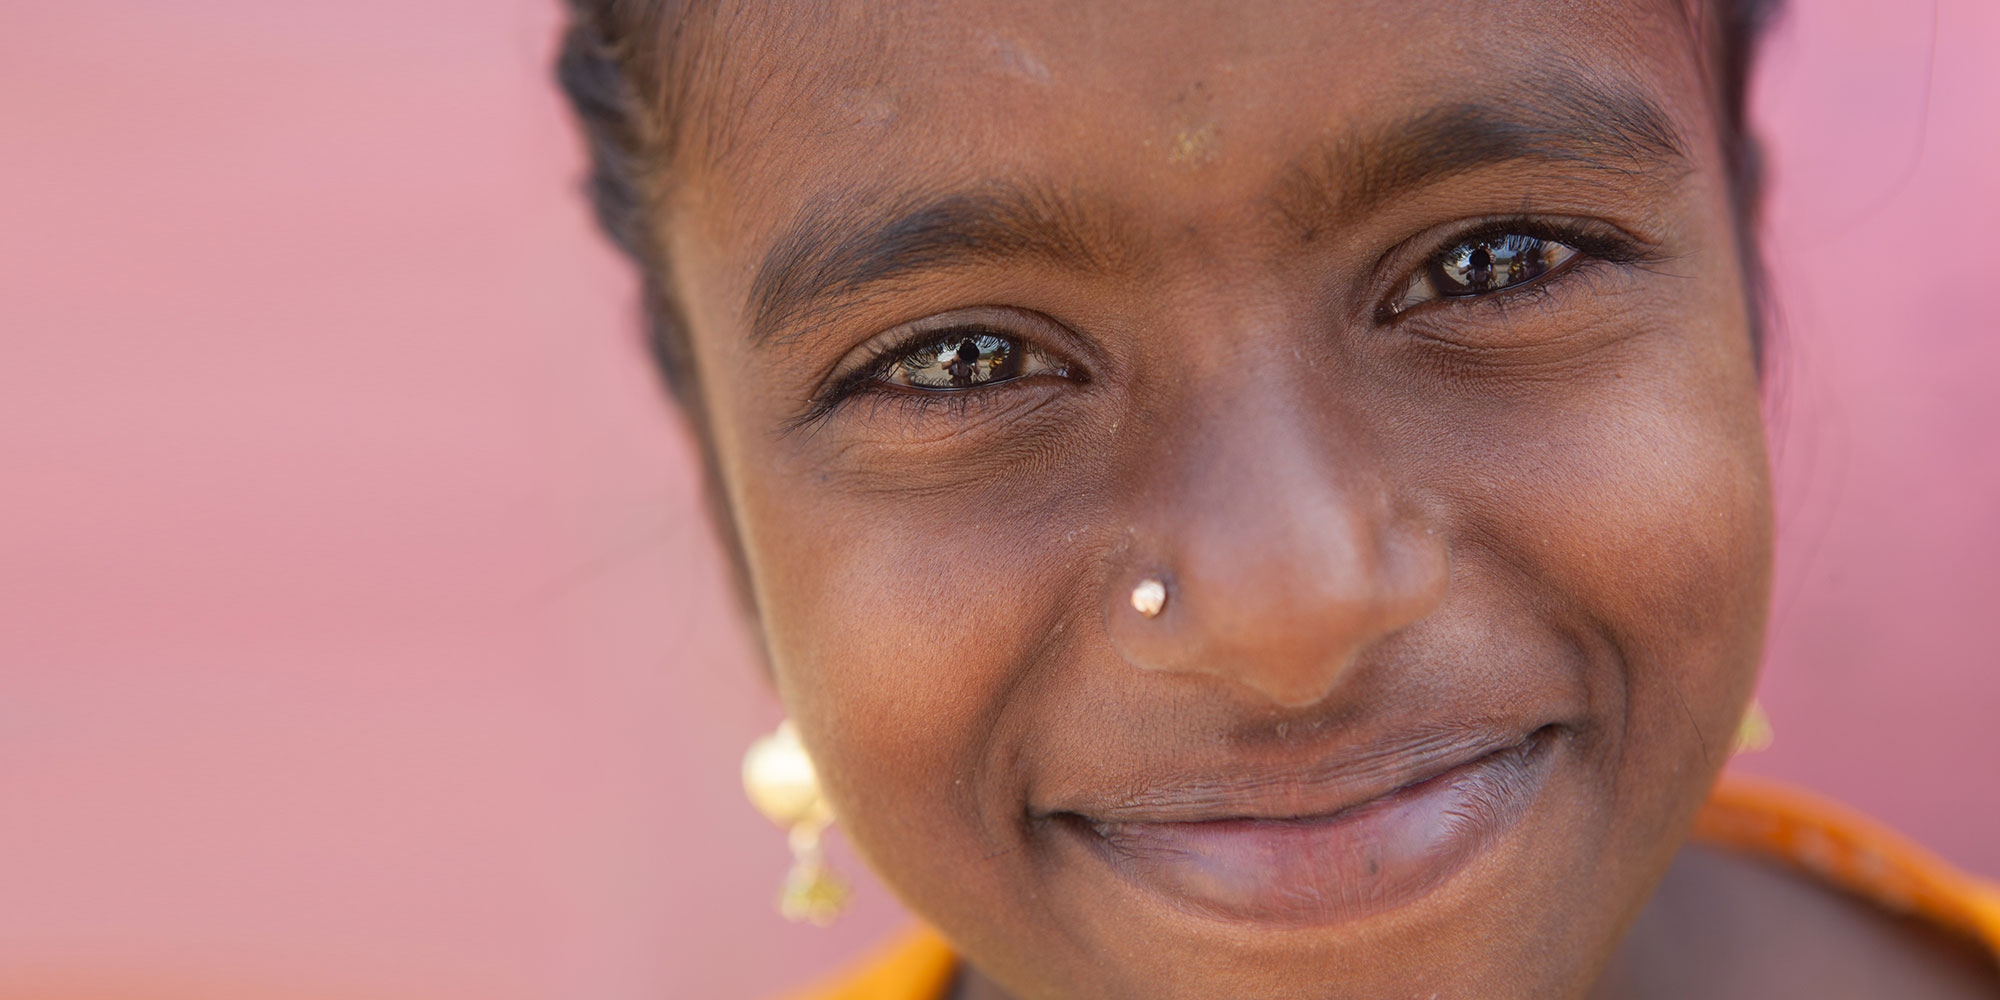 Young India girl with nose ring.